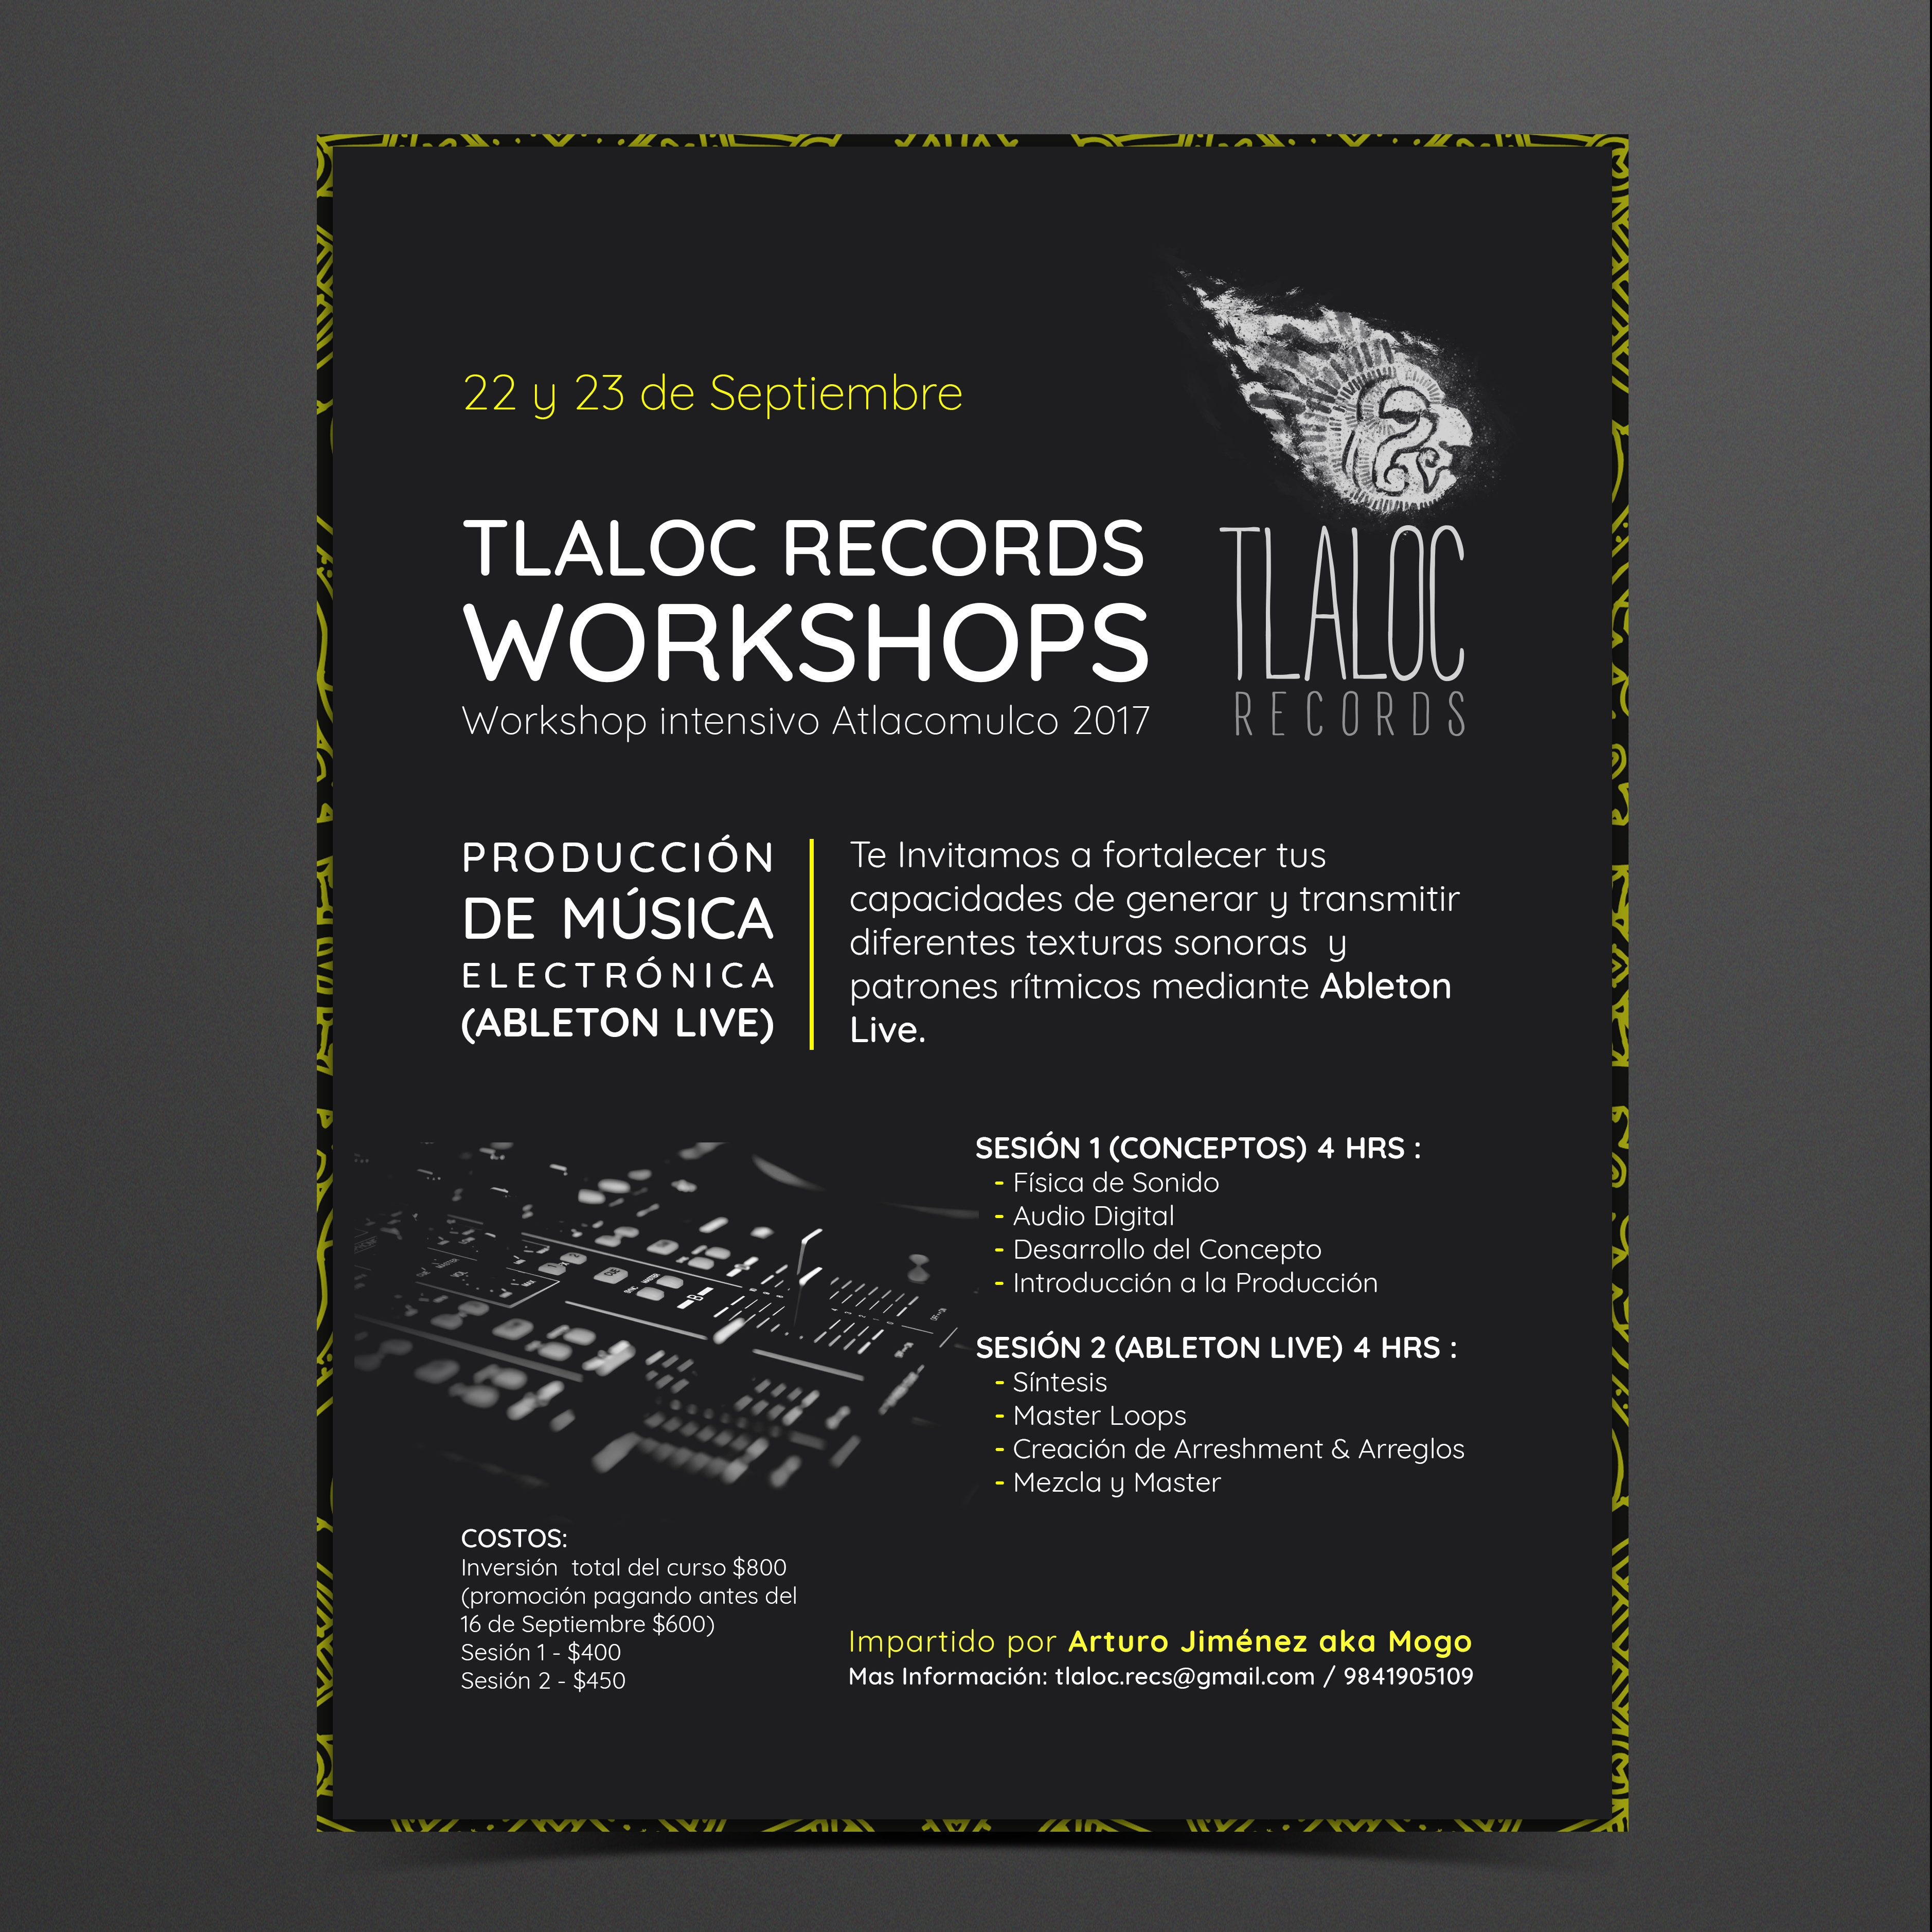 Tlaloc Records Workshop Banners